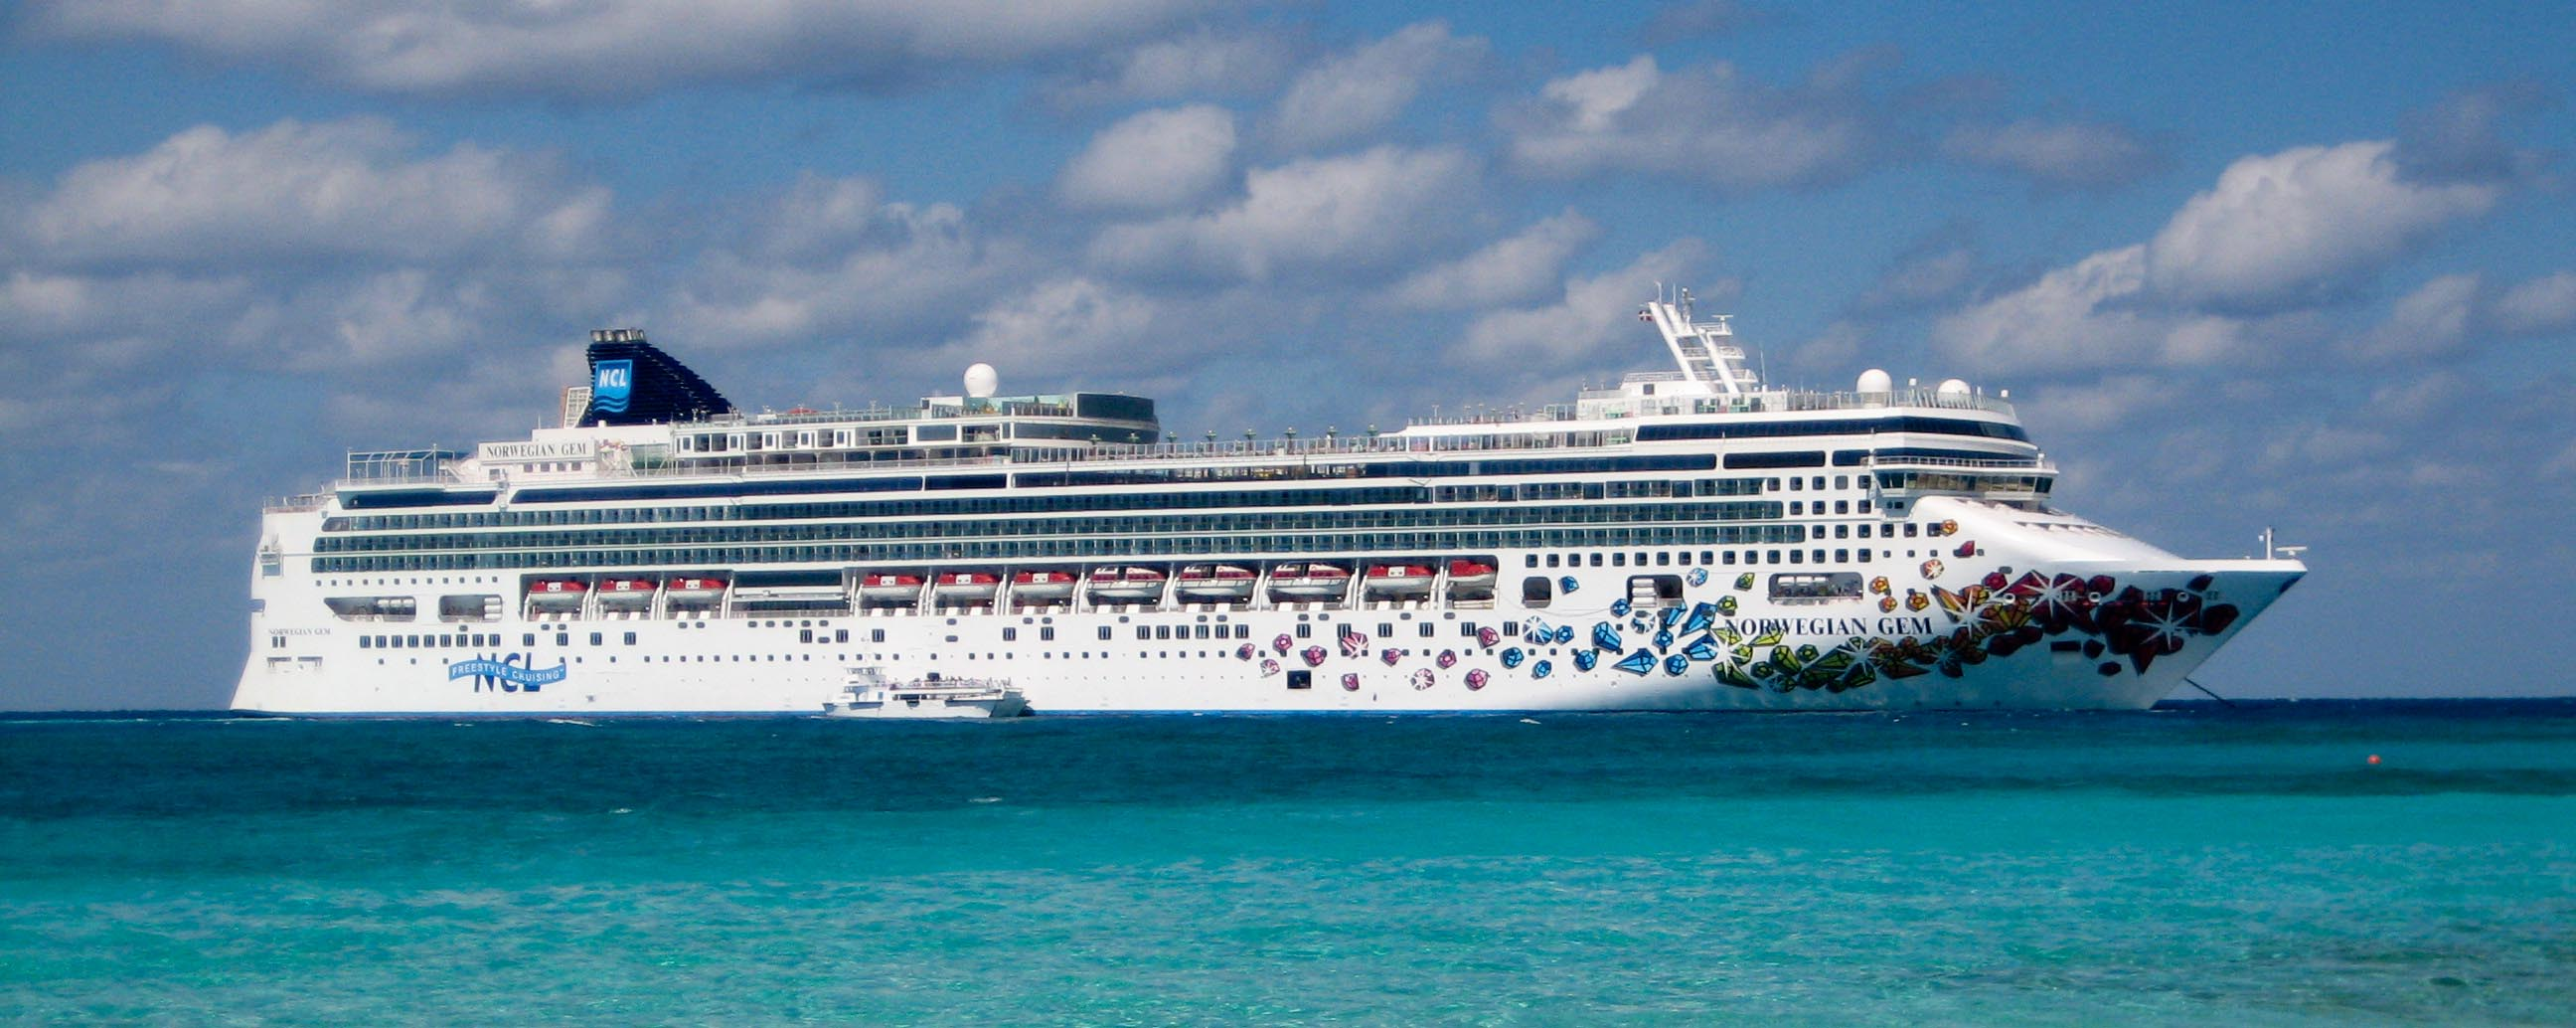 NORWEGIAN CRUISE LINES Interliner - Port side of a cruise ship